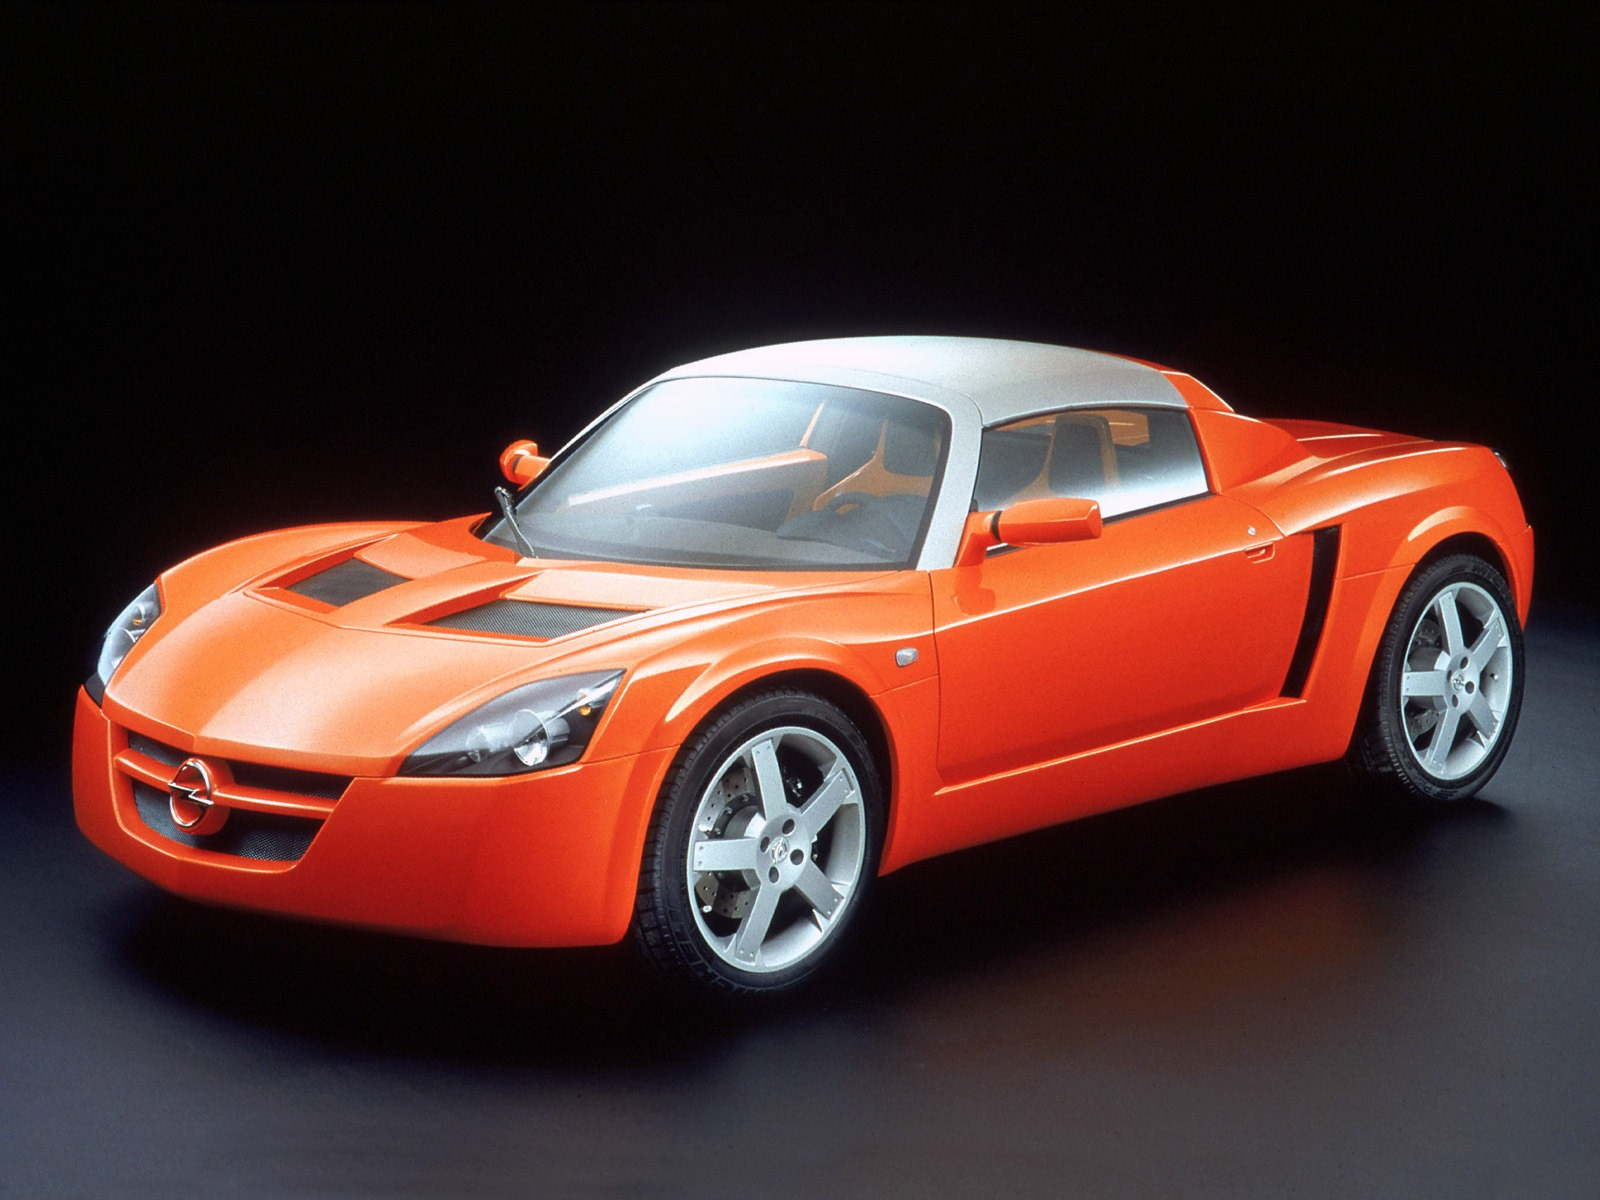 opel 1999 speedster concept cars factory internal 2004 turbo bestcarmag